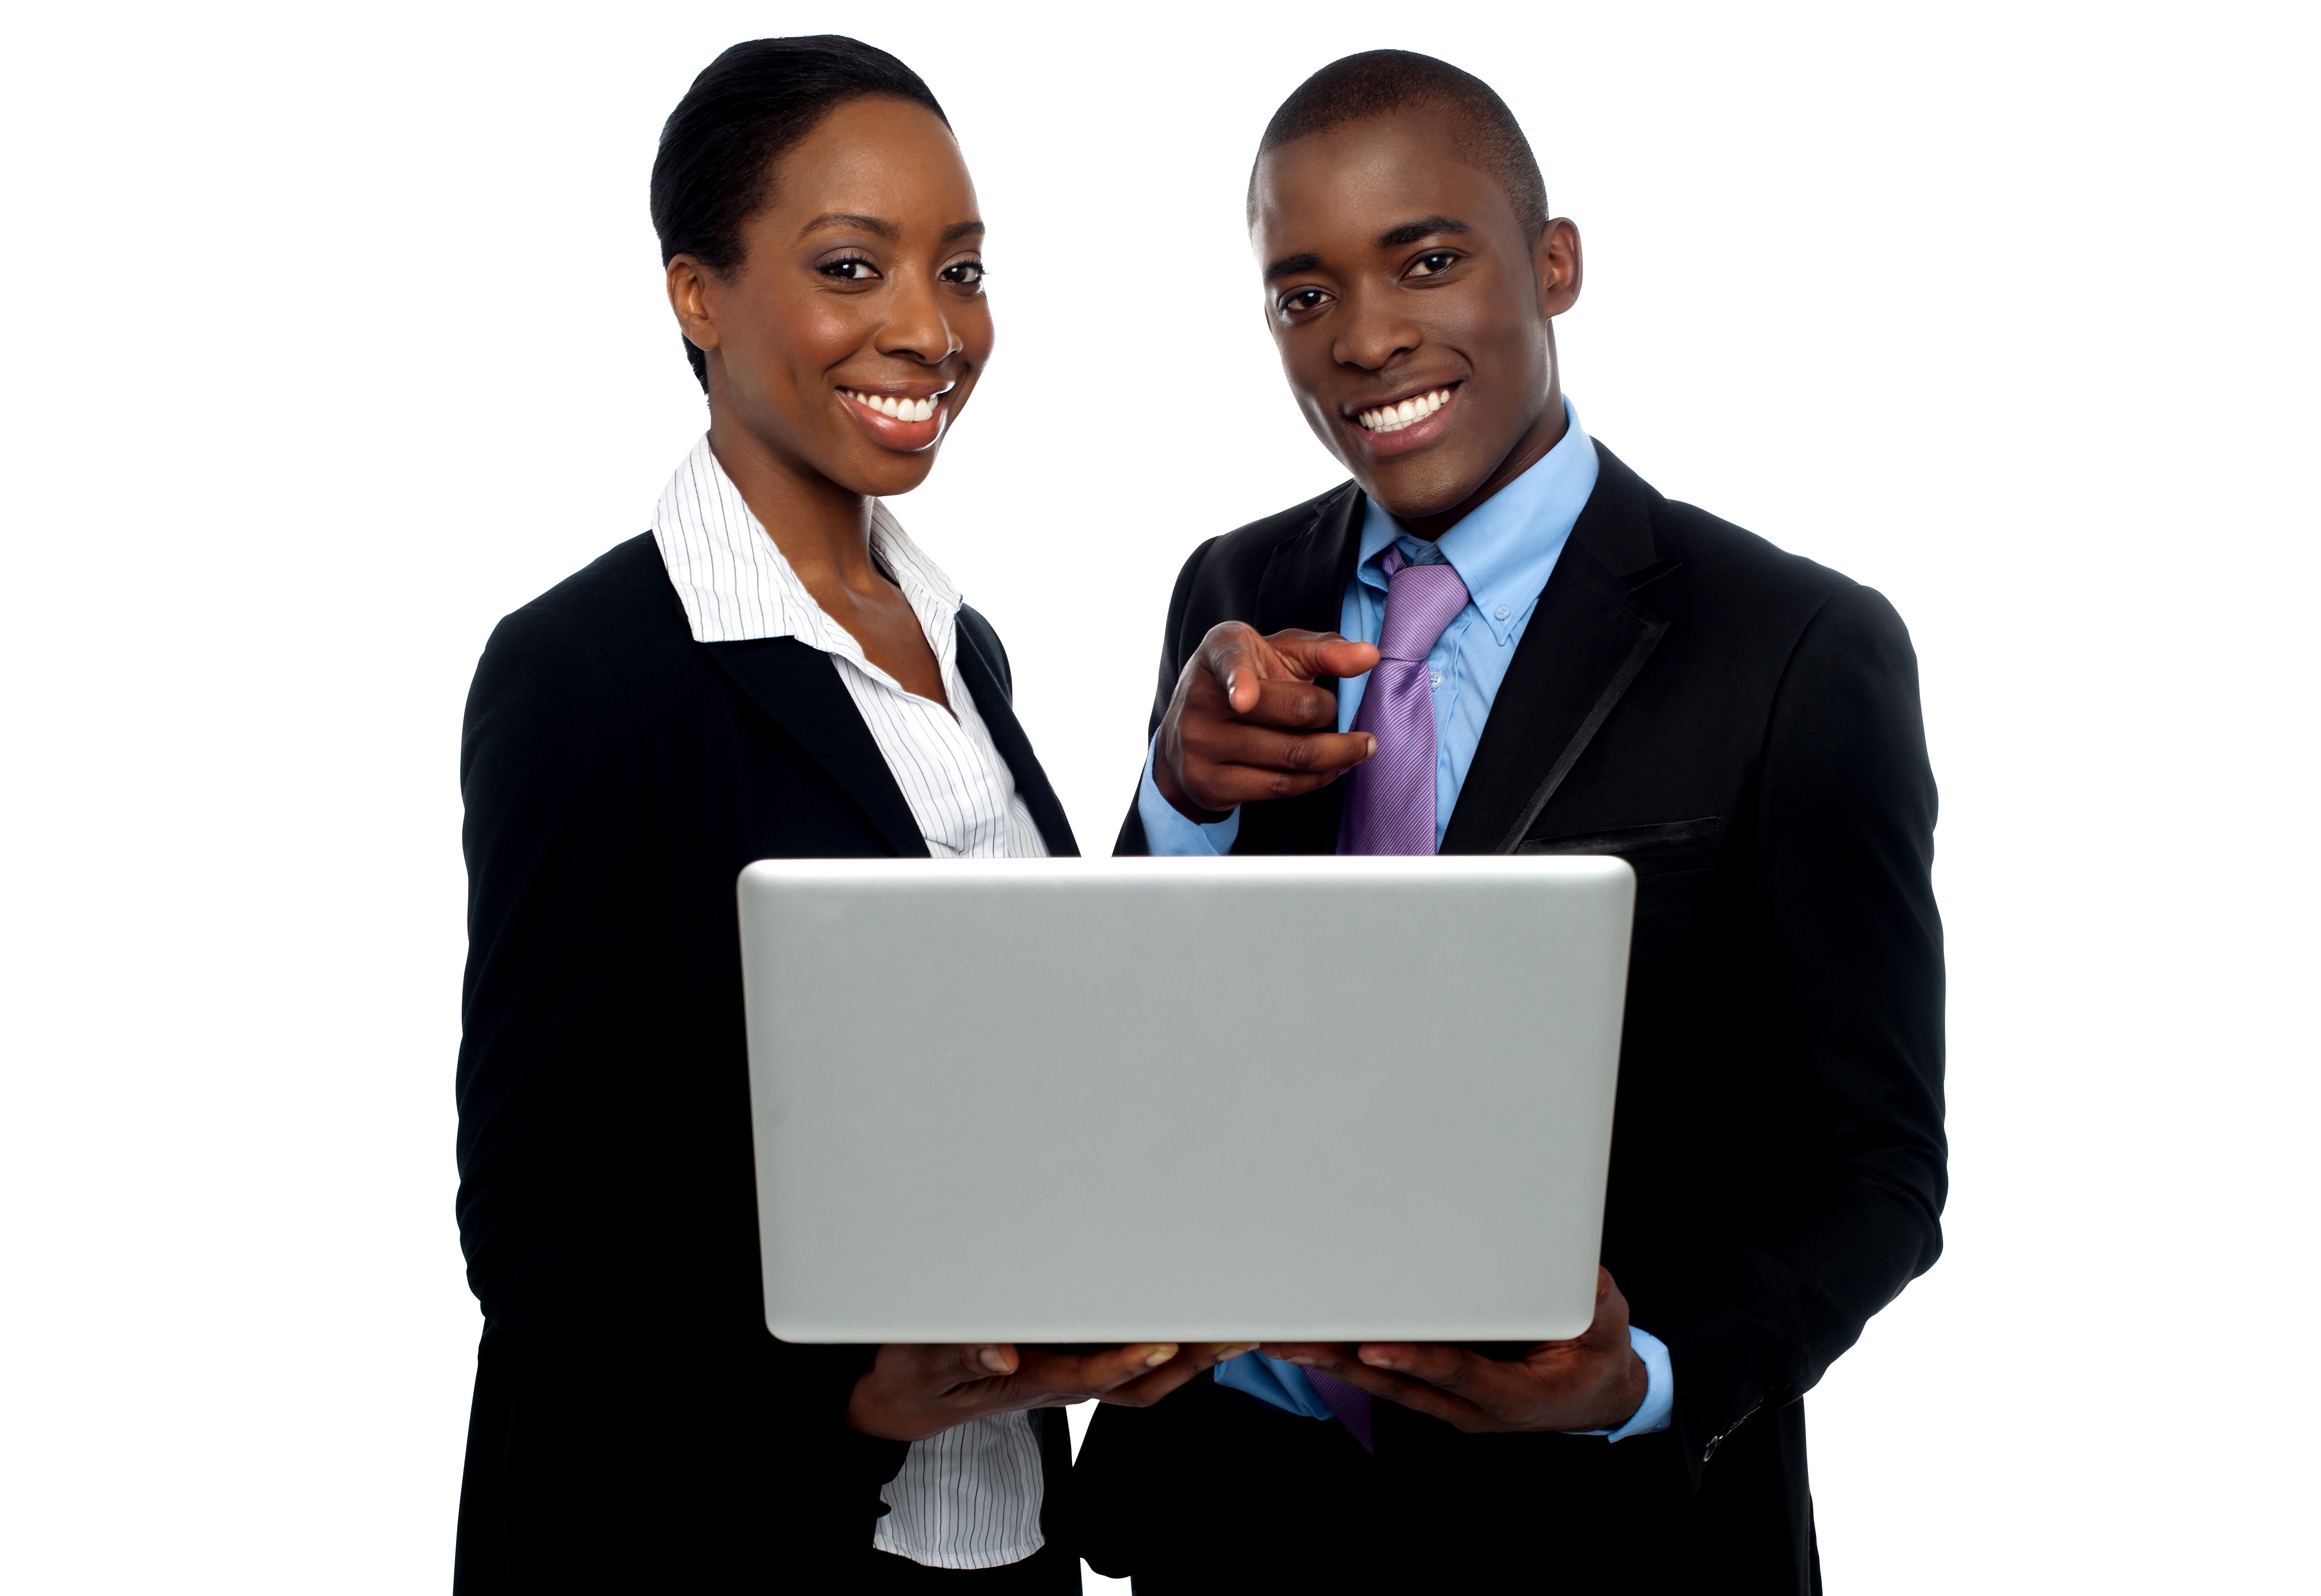 Business men and women png. Image purepng free transparent